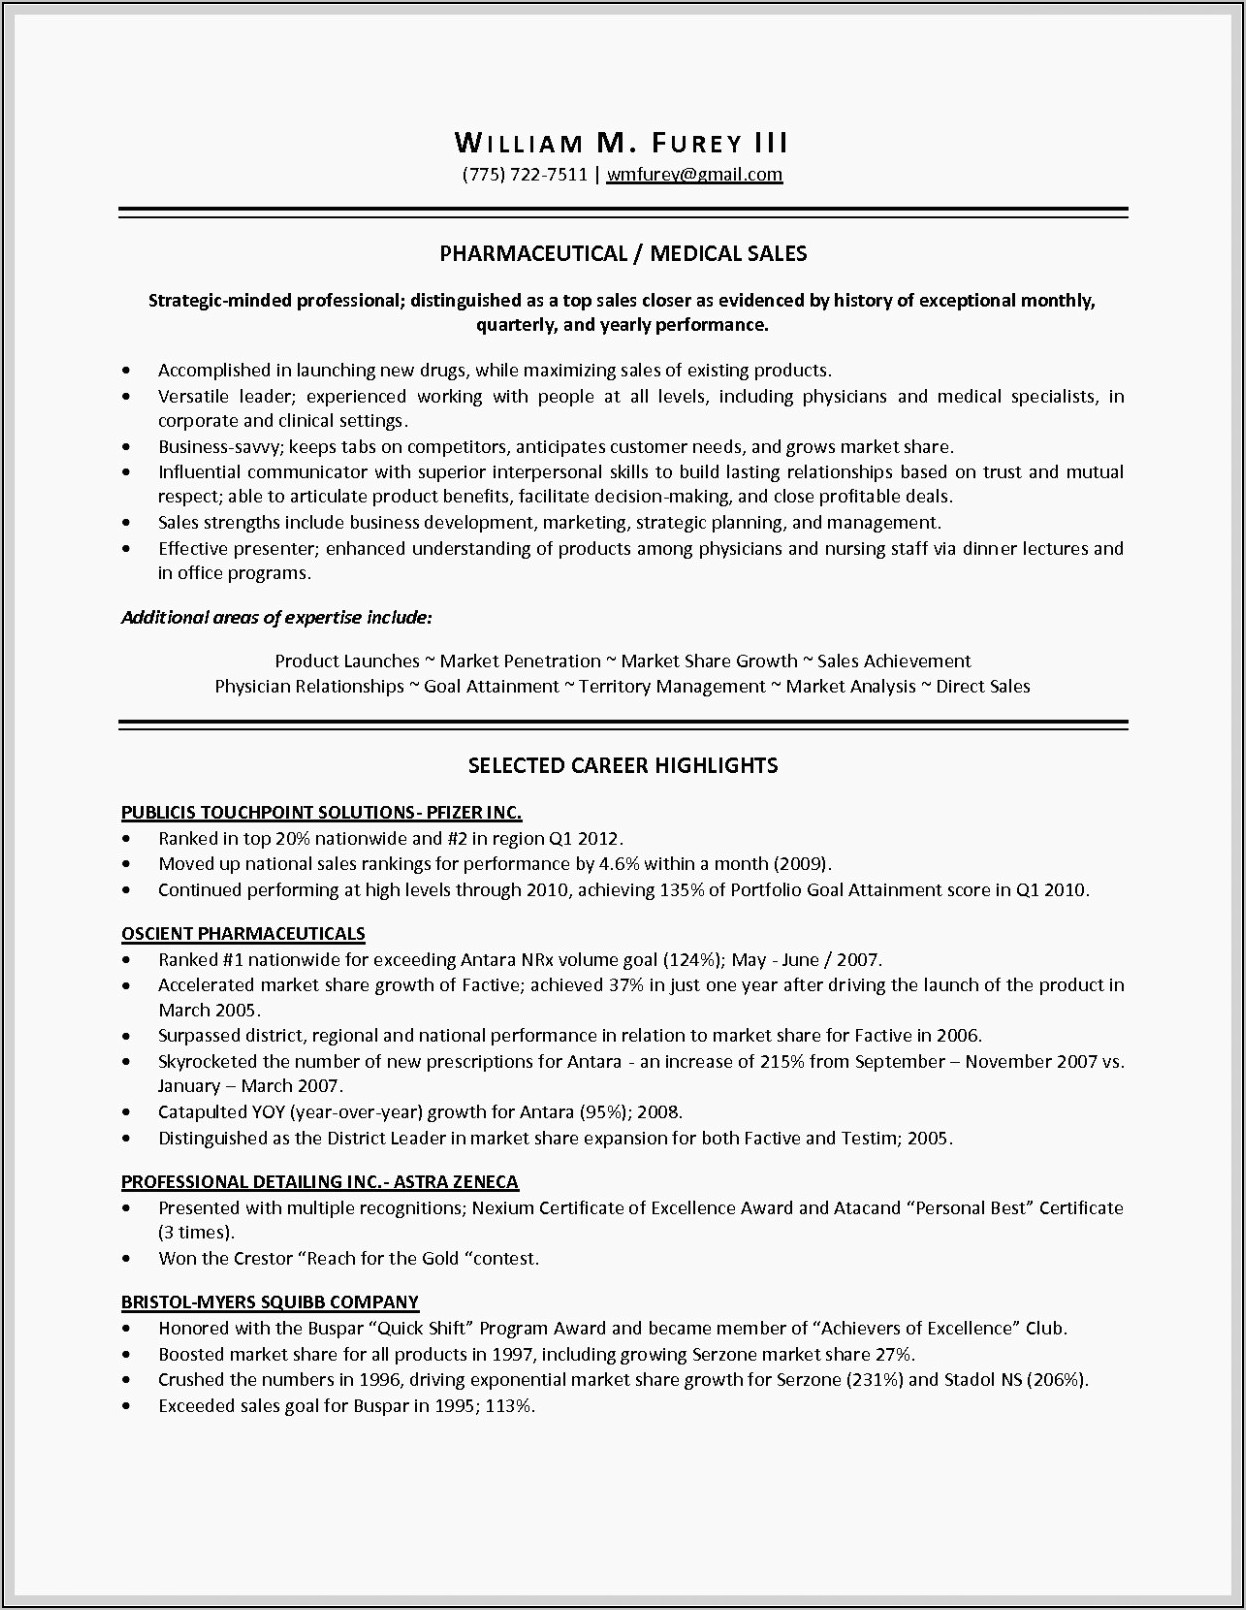 100 Percent Free Resume Builder